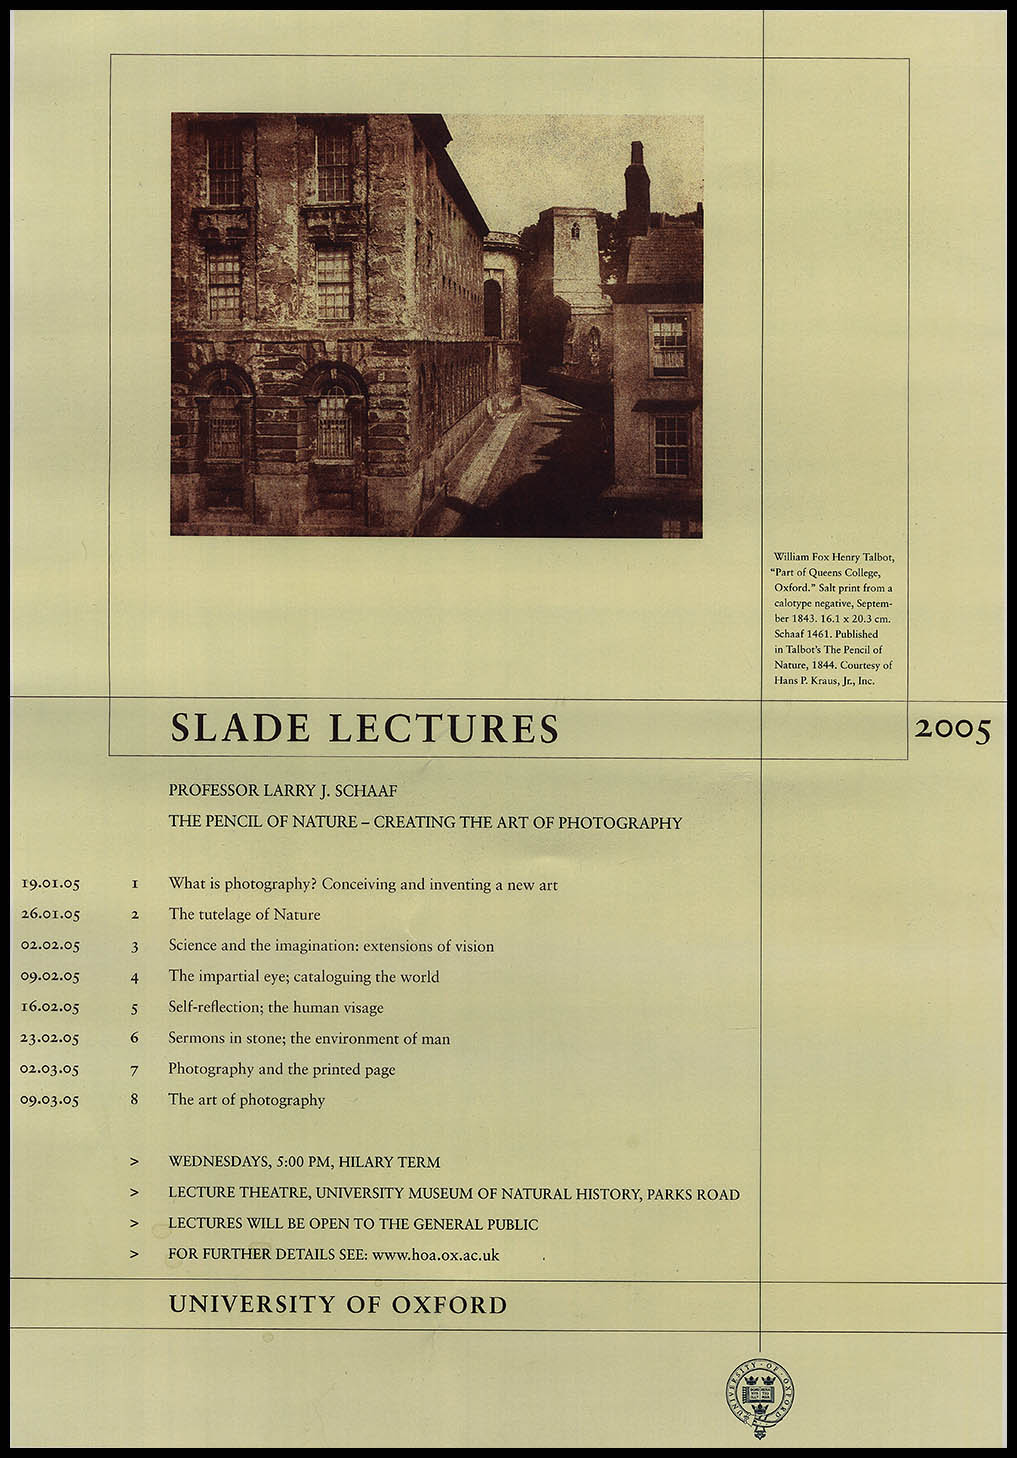 SladeLectures_2005